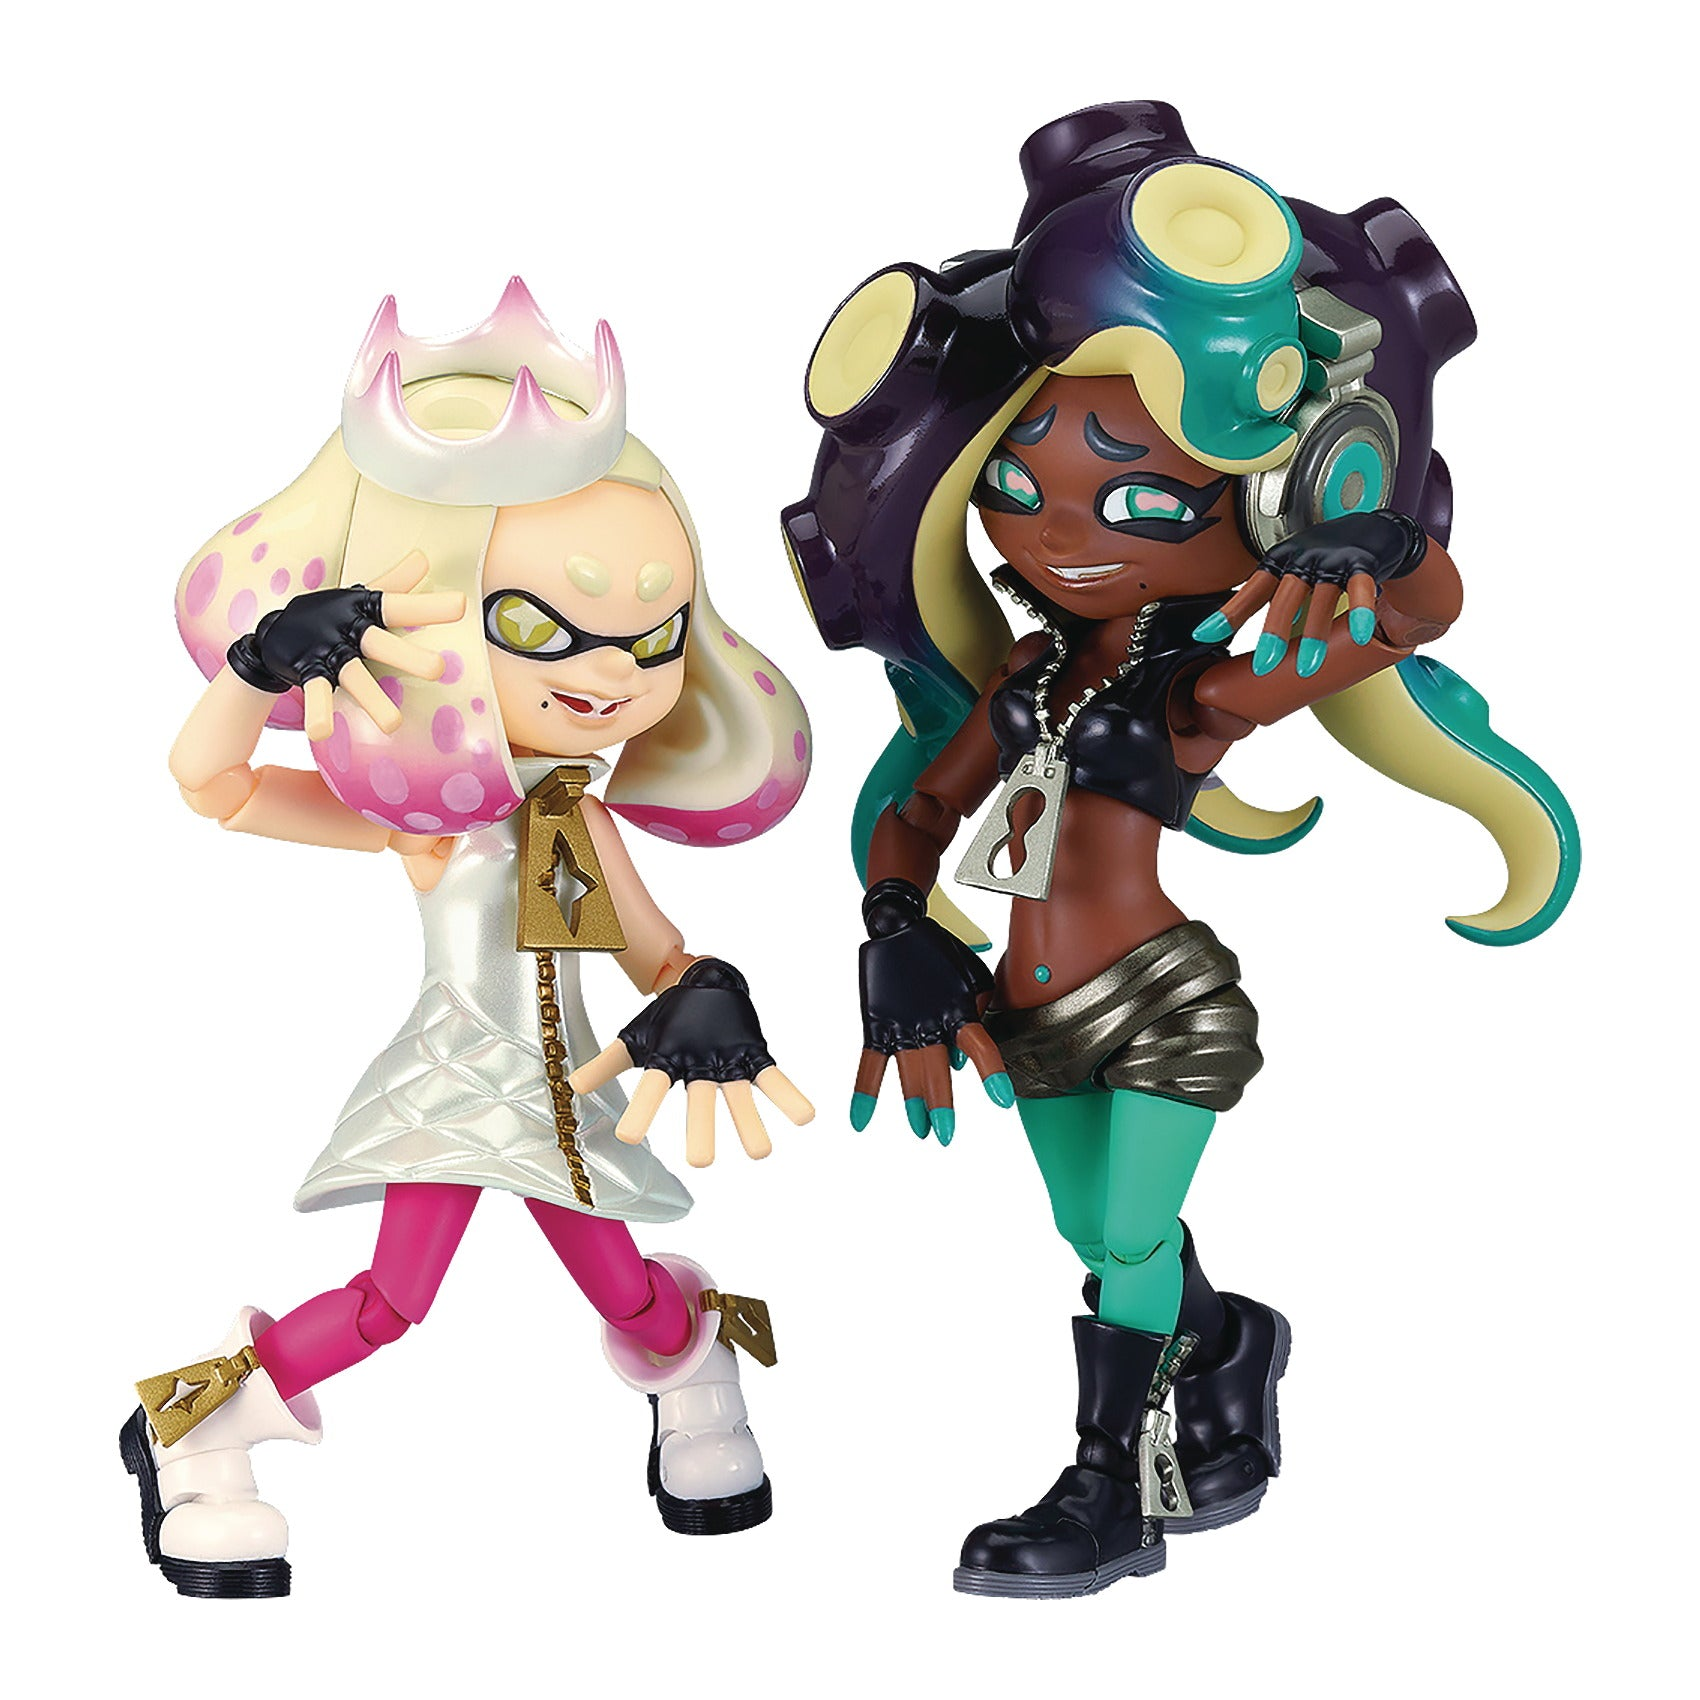 Splatoon 2 Off The Hook FIGMA Action Figure Set